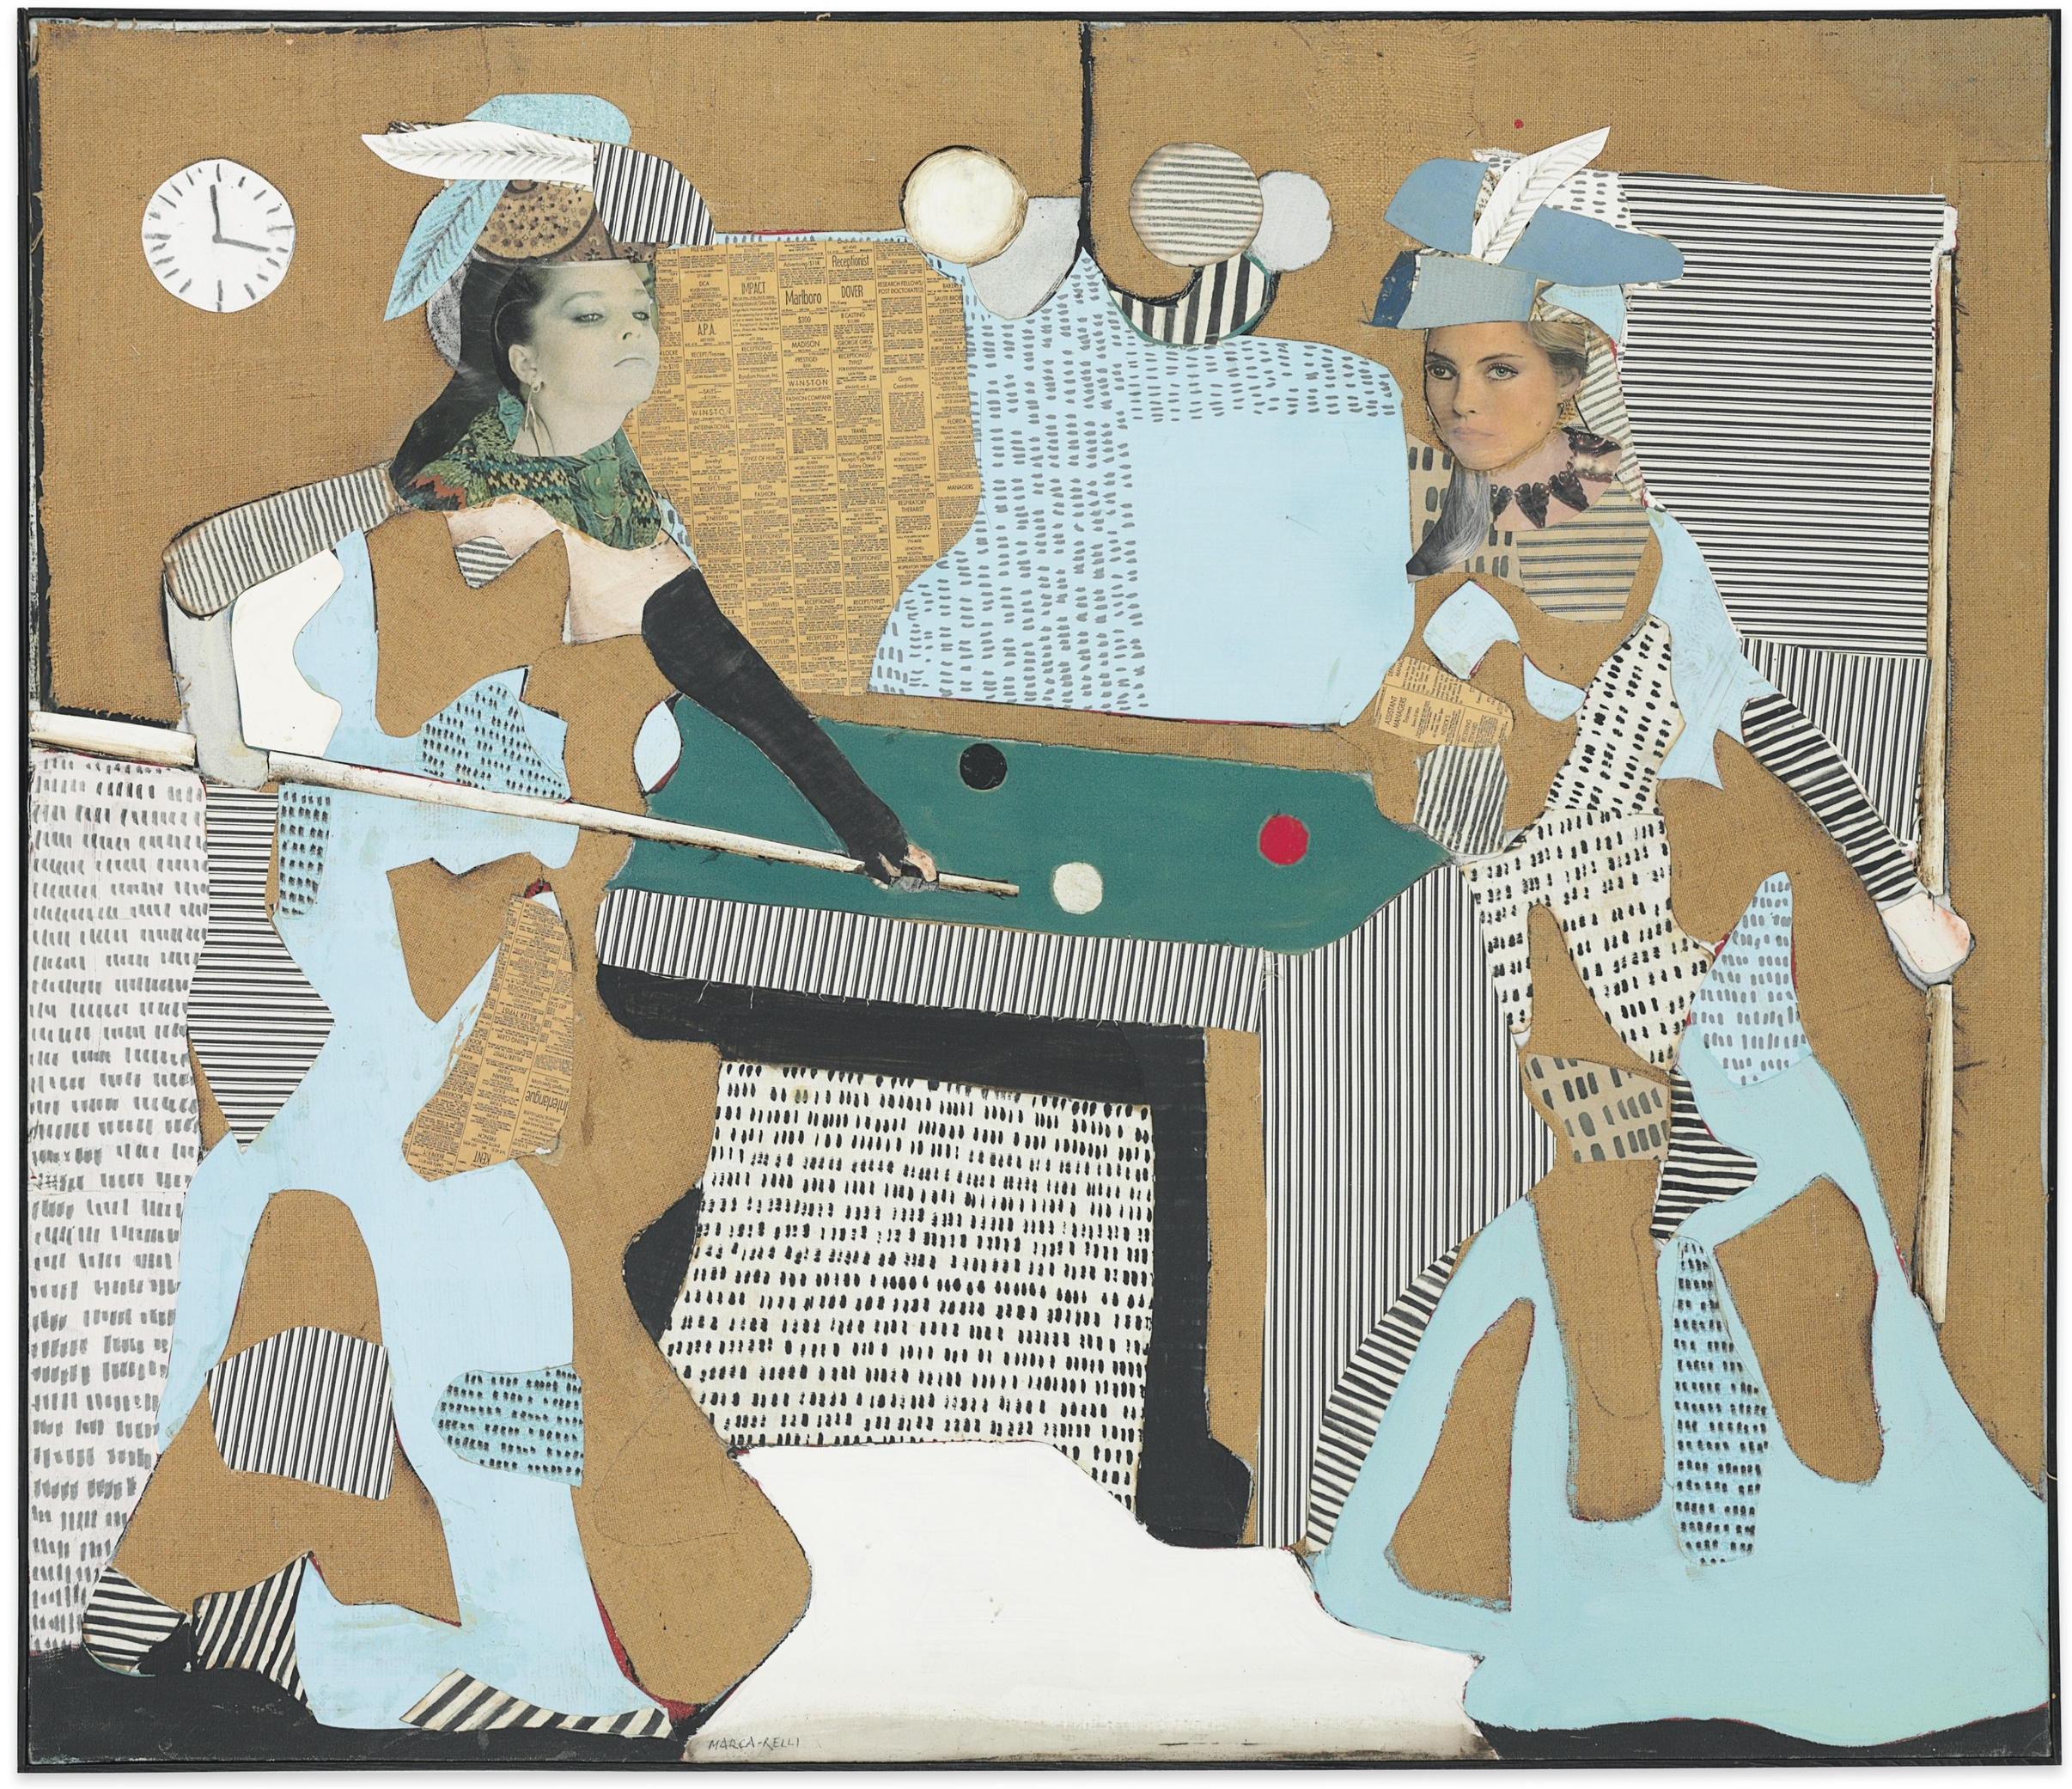 The Pool Game, 1981  , oil on burlap, fabric, printed paper, and newsprint collage on canvas, 48 x 55 1/2 inches